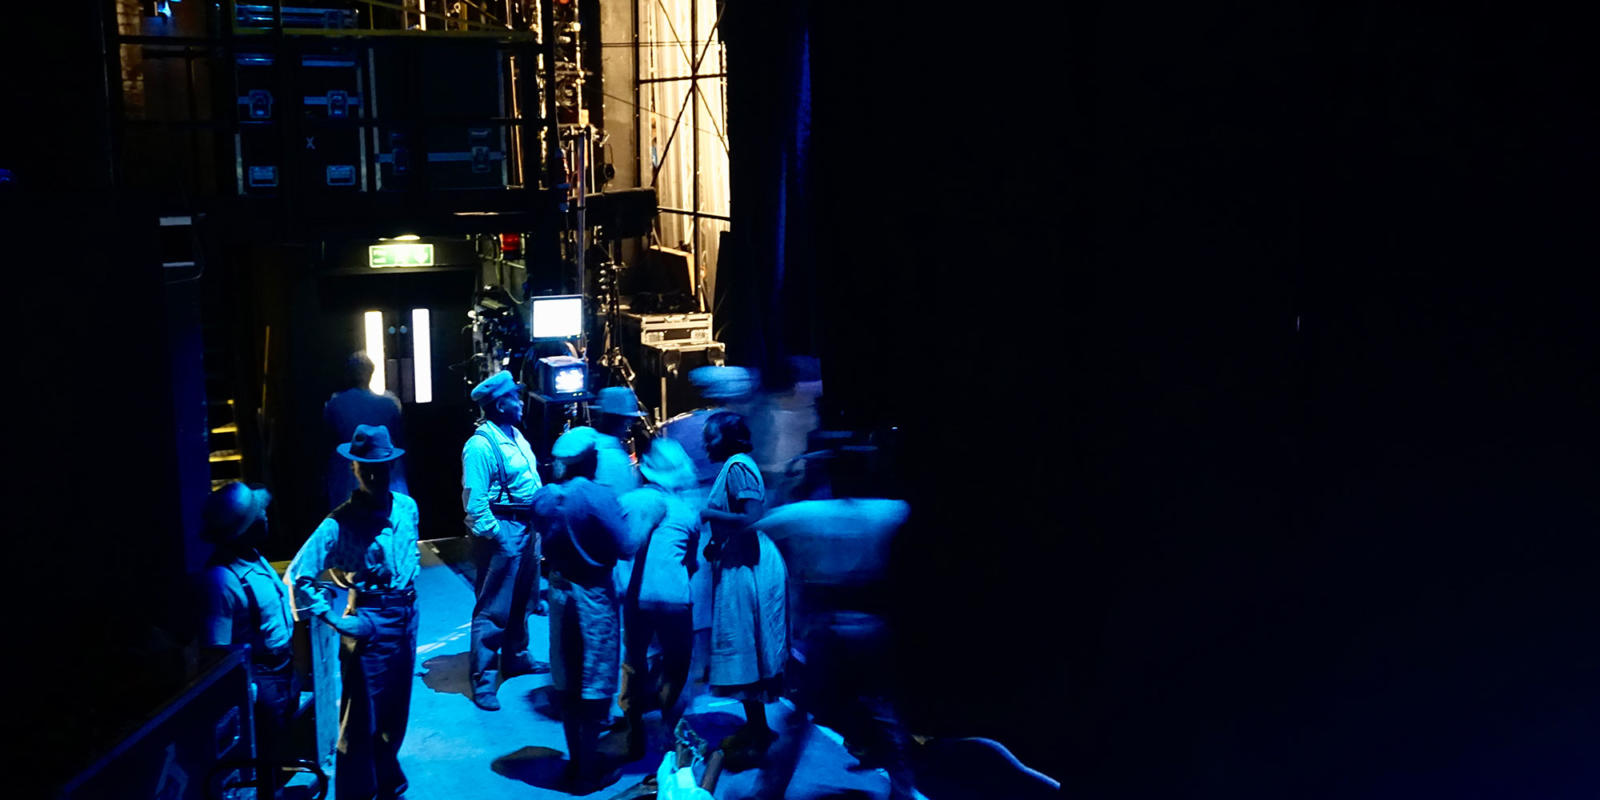 ENO Porgy and Bess: Members of the ensemble wait in the wings